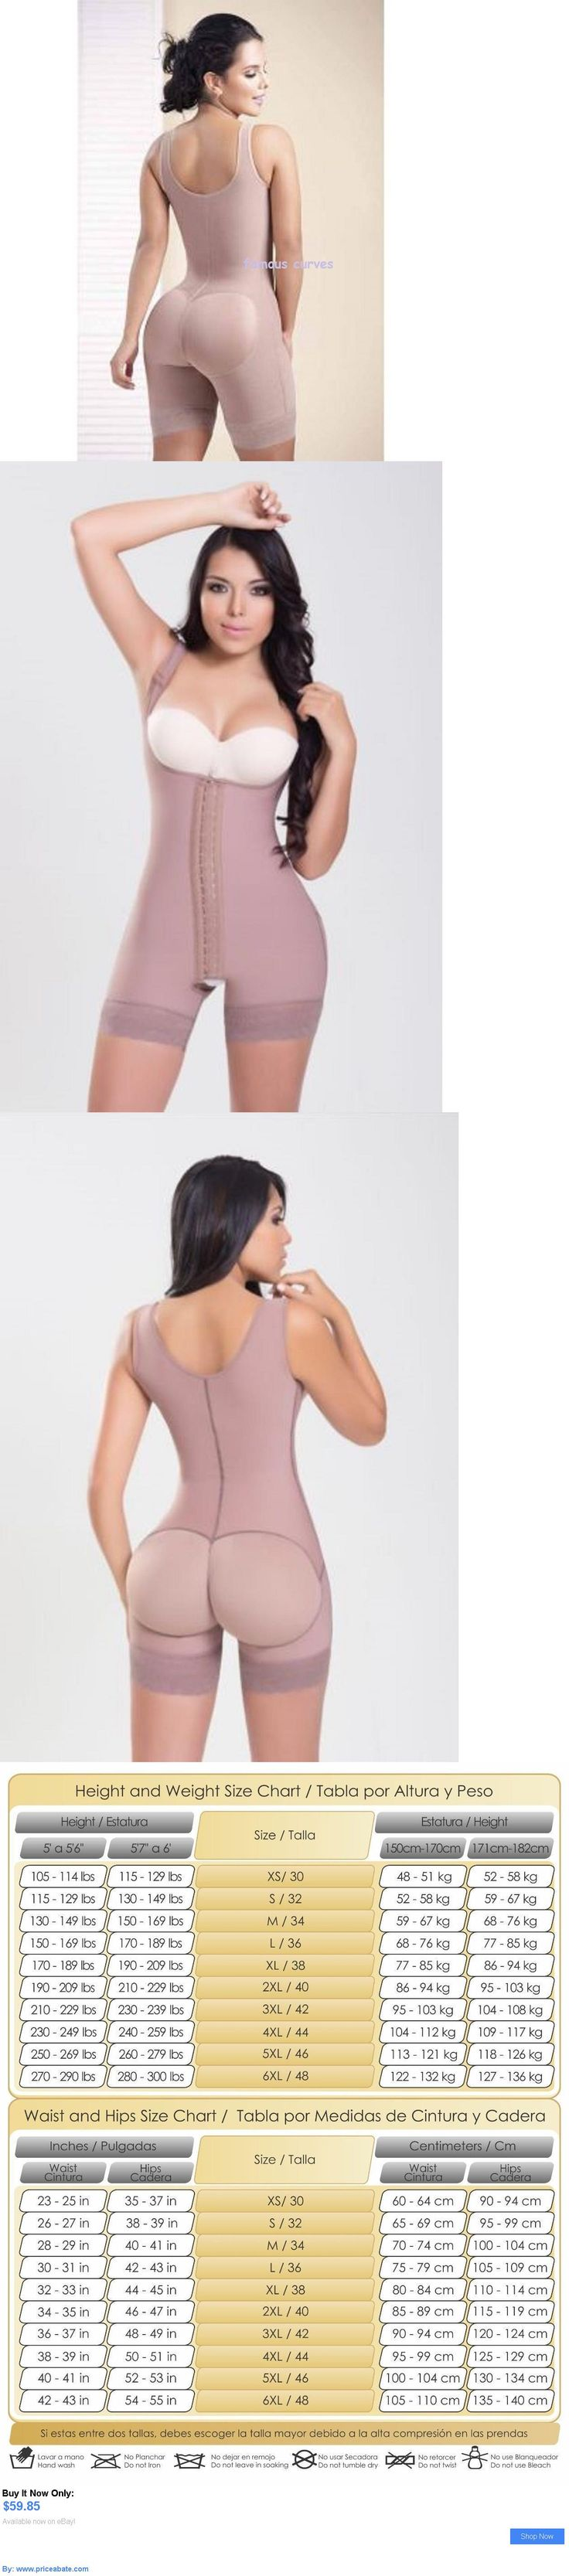 Women Shapewear: Fajas Colombianas Shapewear 3 Hooks Latex Waist Trainer Cincher Faja Reductoras BUY IT NOW ONLY: $59.85 #priceabateWomenShapewear OR #priceabate